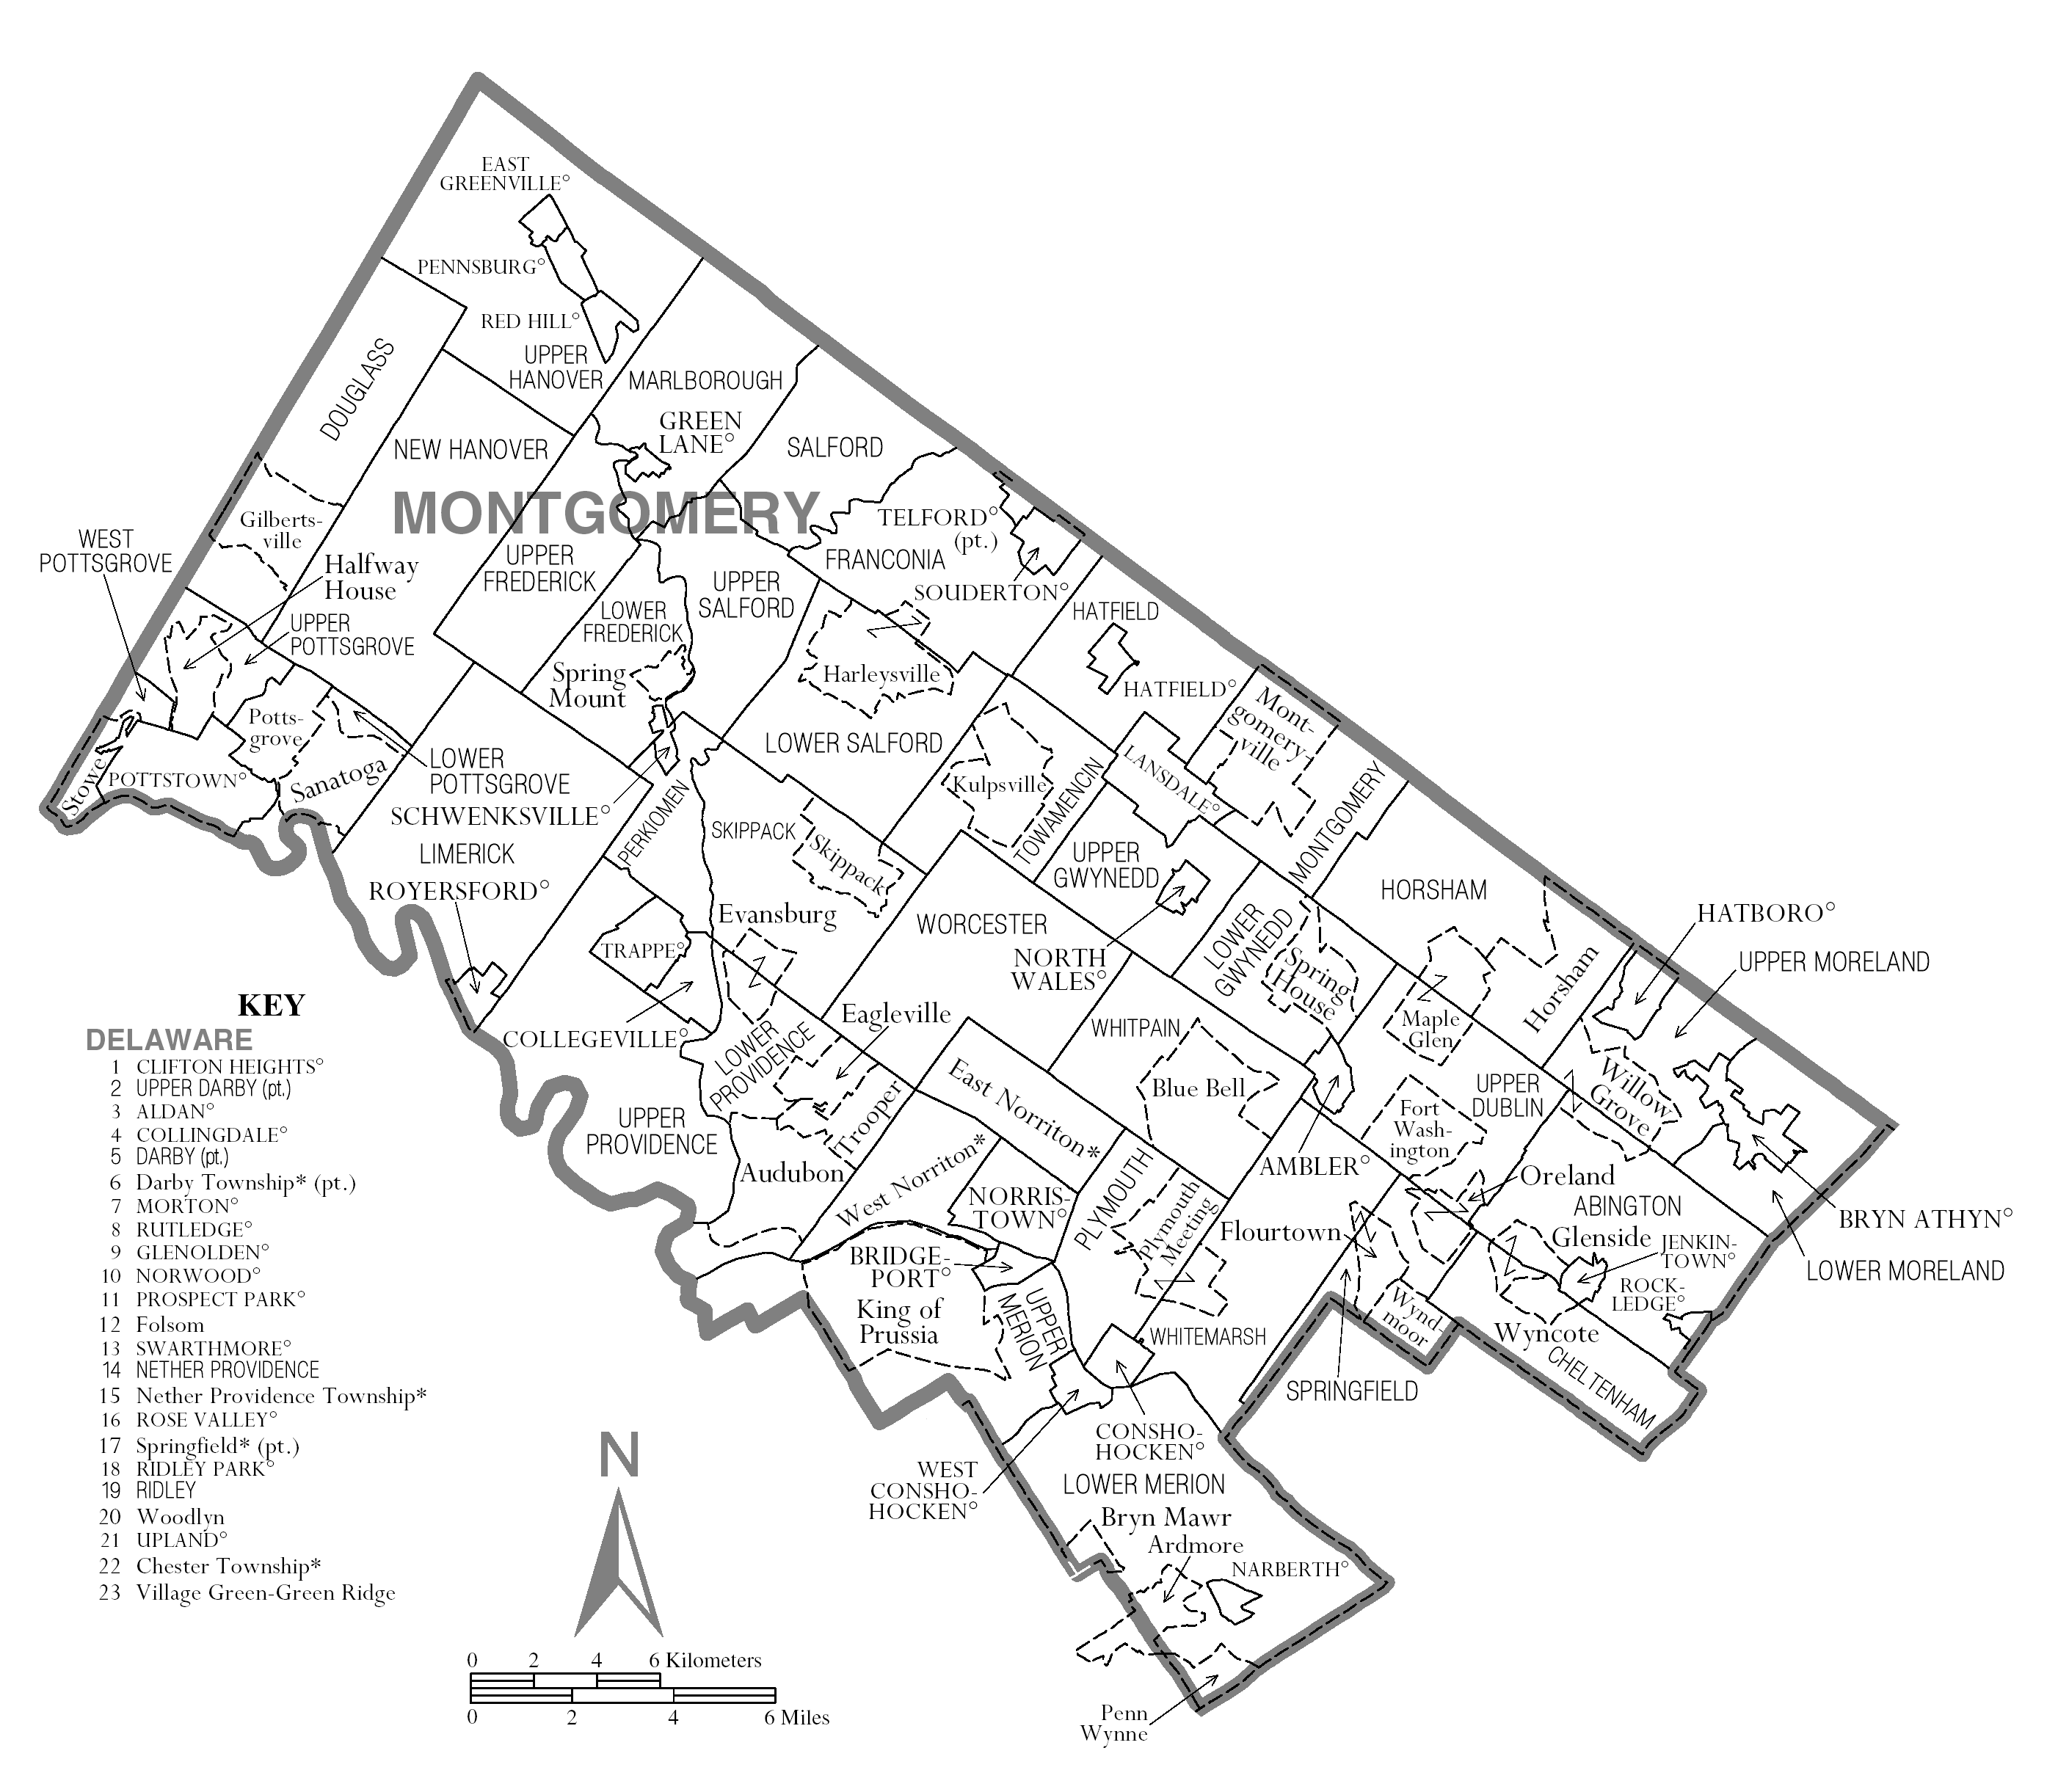 File:Map of Montgomery County, Pennsylvania.png   Wikimedia Commons